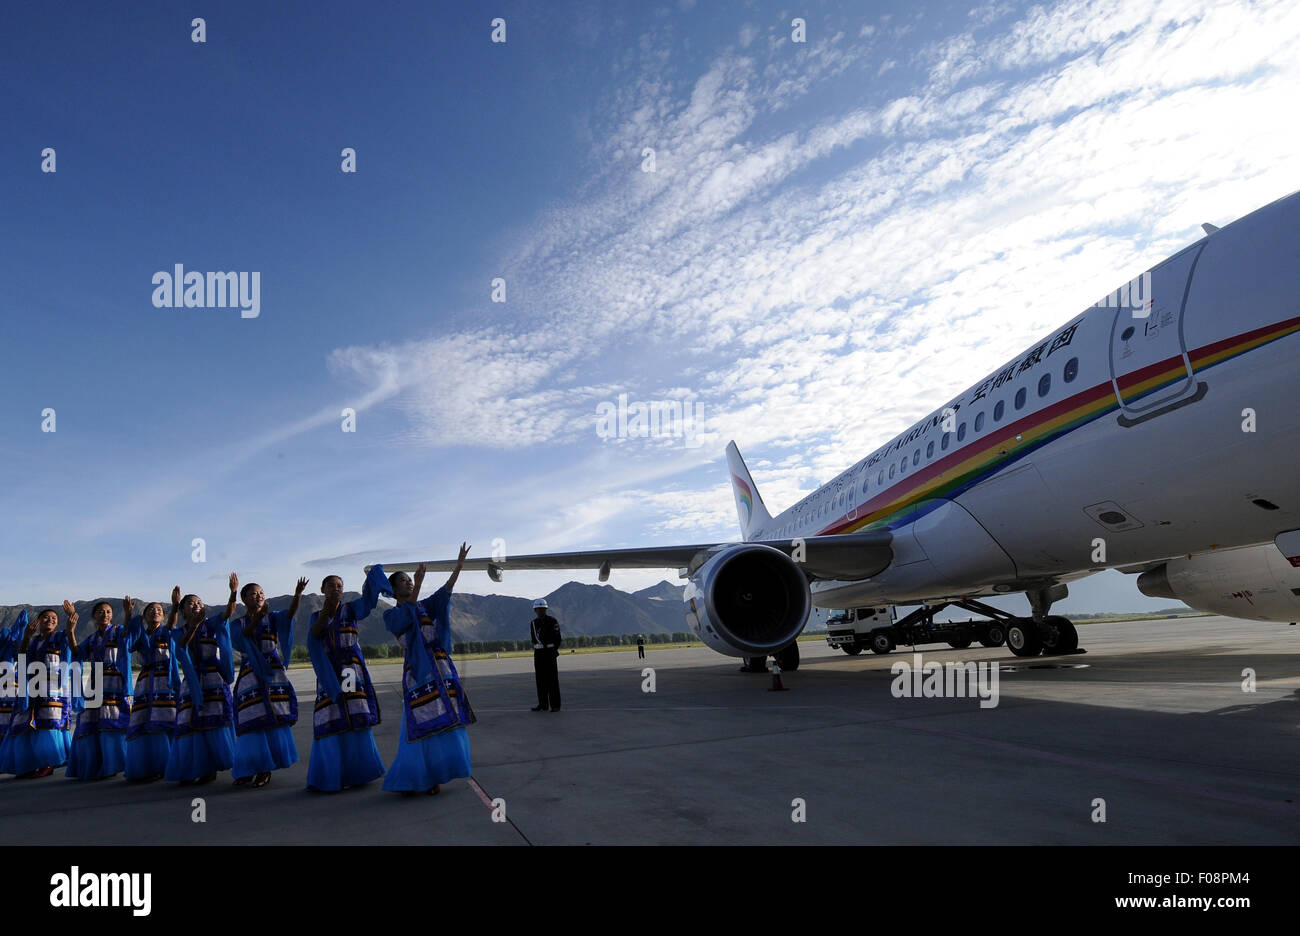 (150810) -- LHASA, Aug. 10, 2015 (Xinhua) -- Photo taken on July 26, 2011 shows the inaugural flight ceremony of - Stock Image